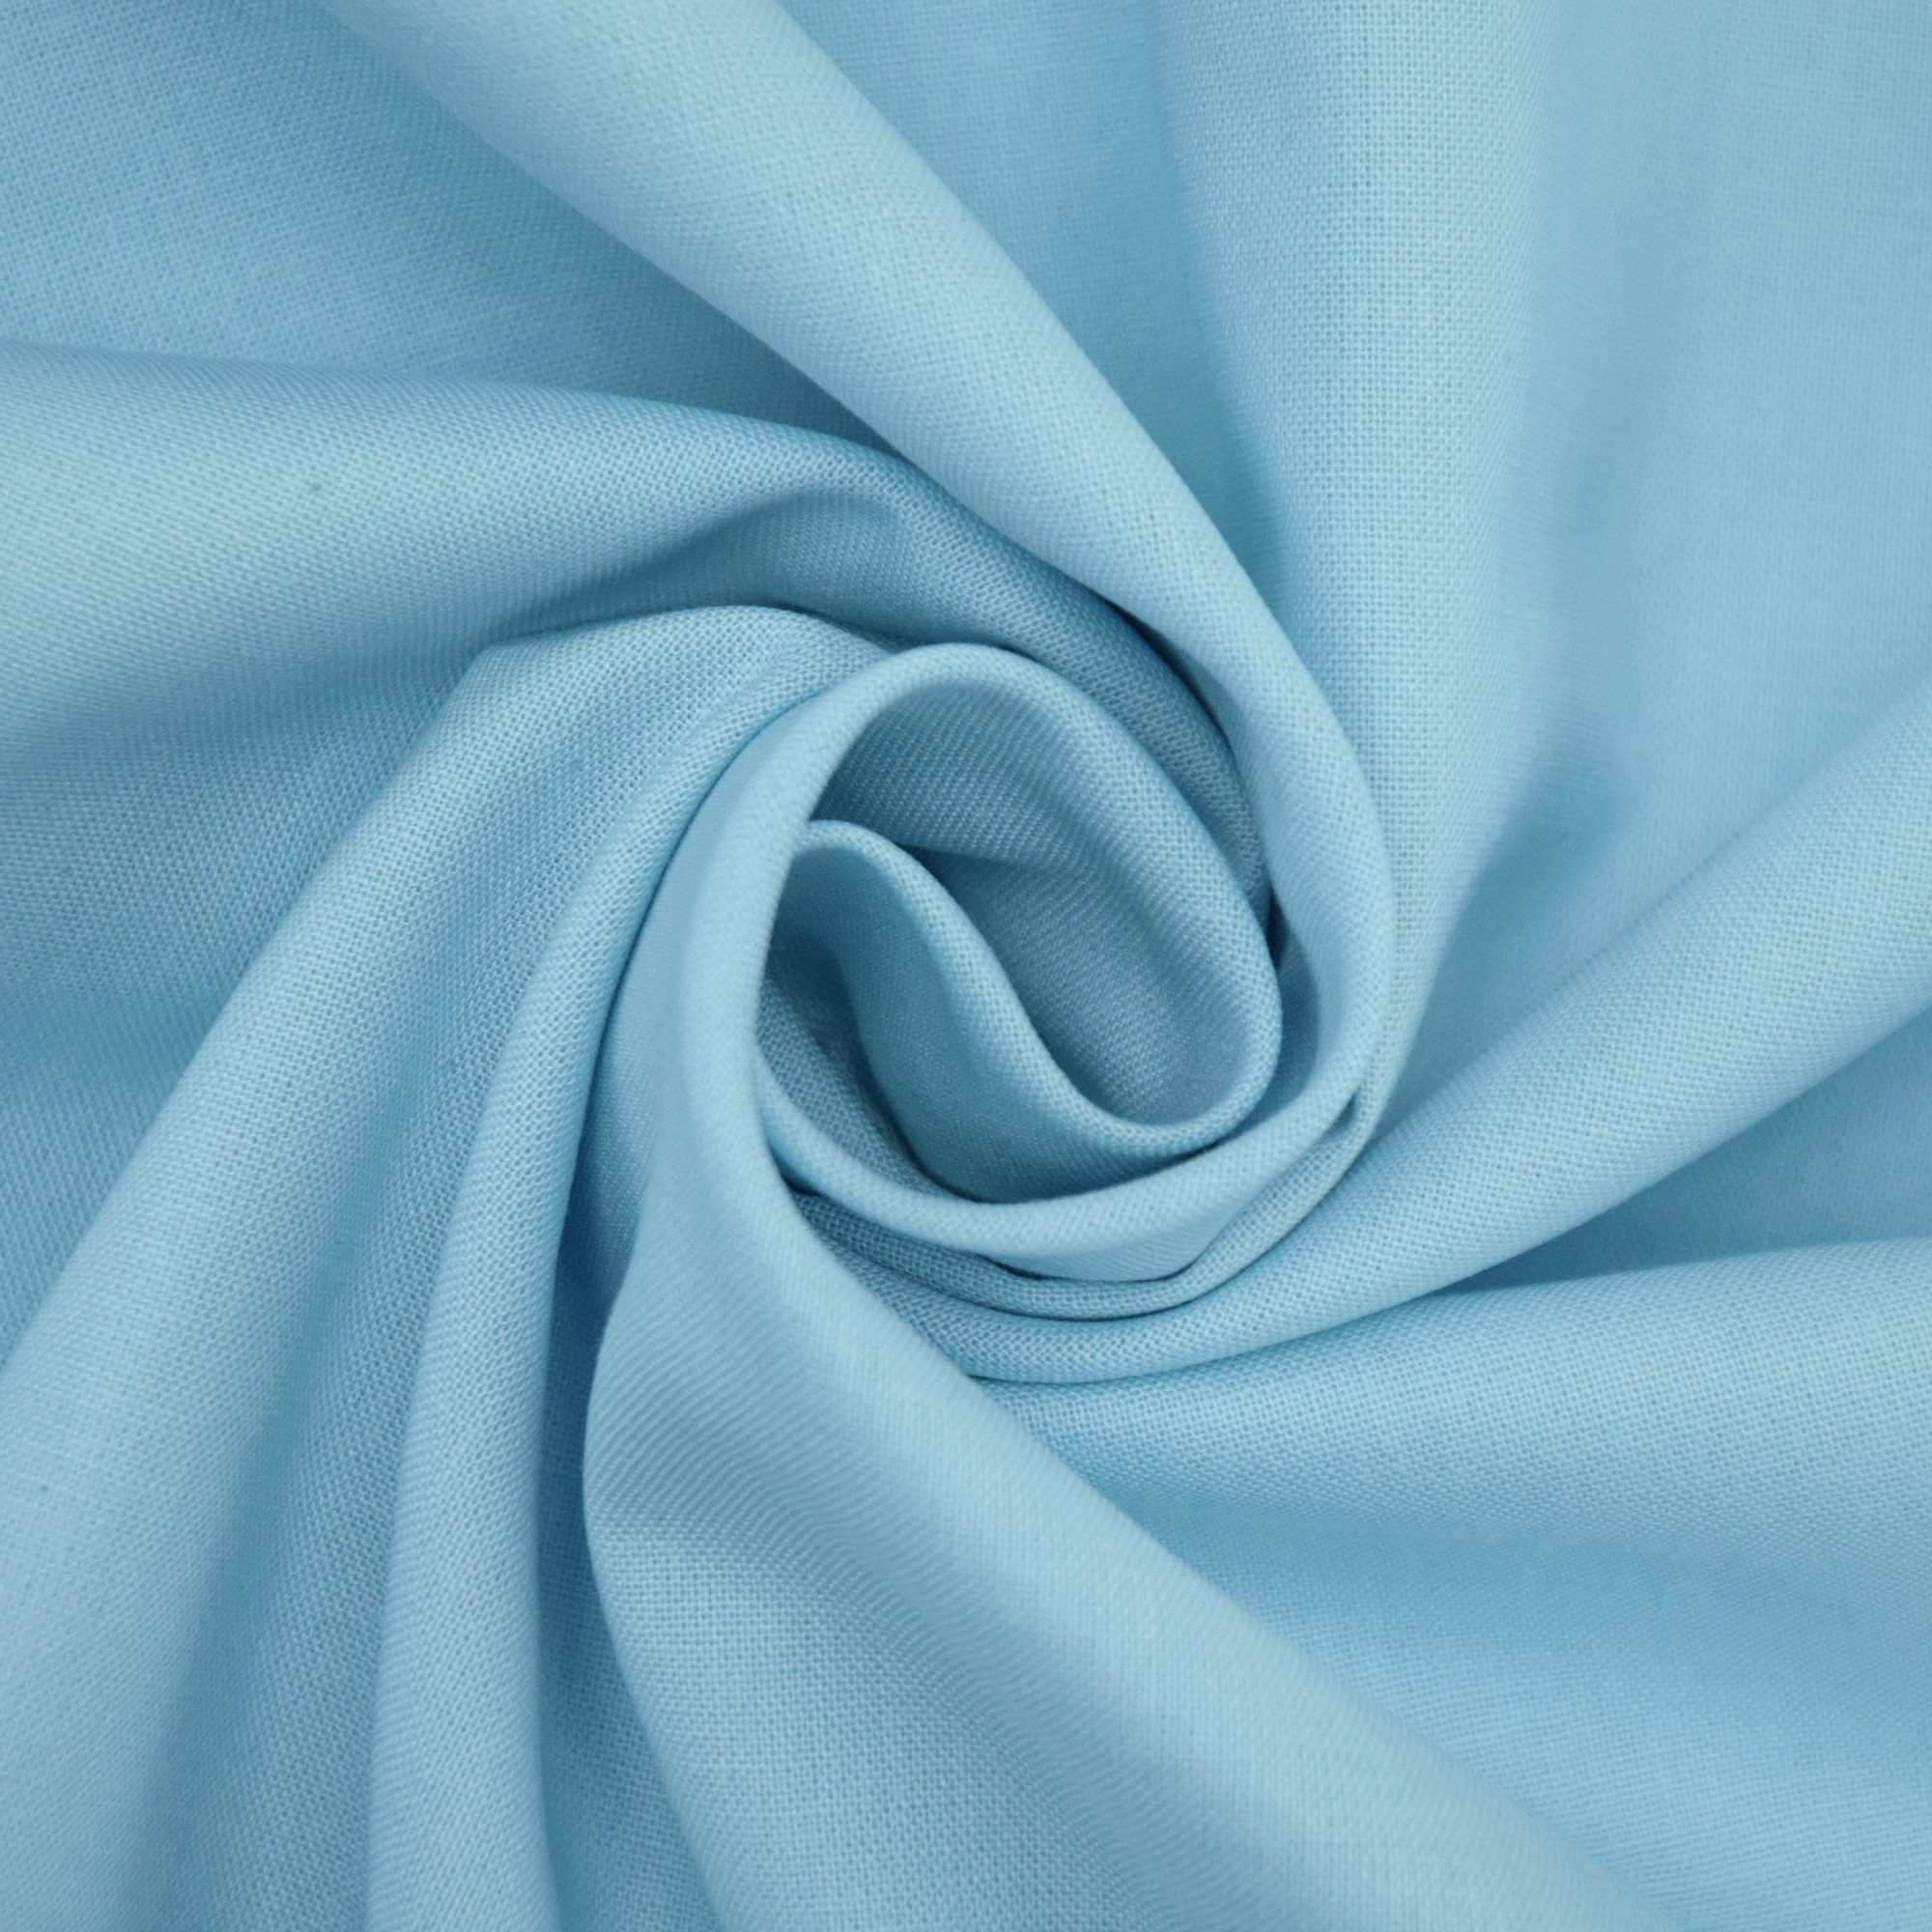 Cotton Cretonne light blue | 100.018-5029 | blau